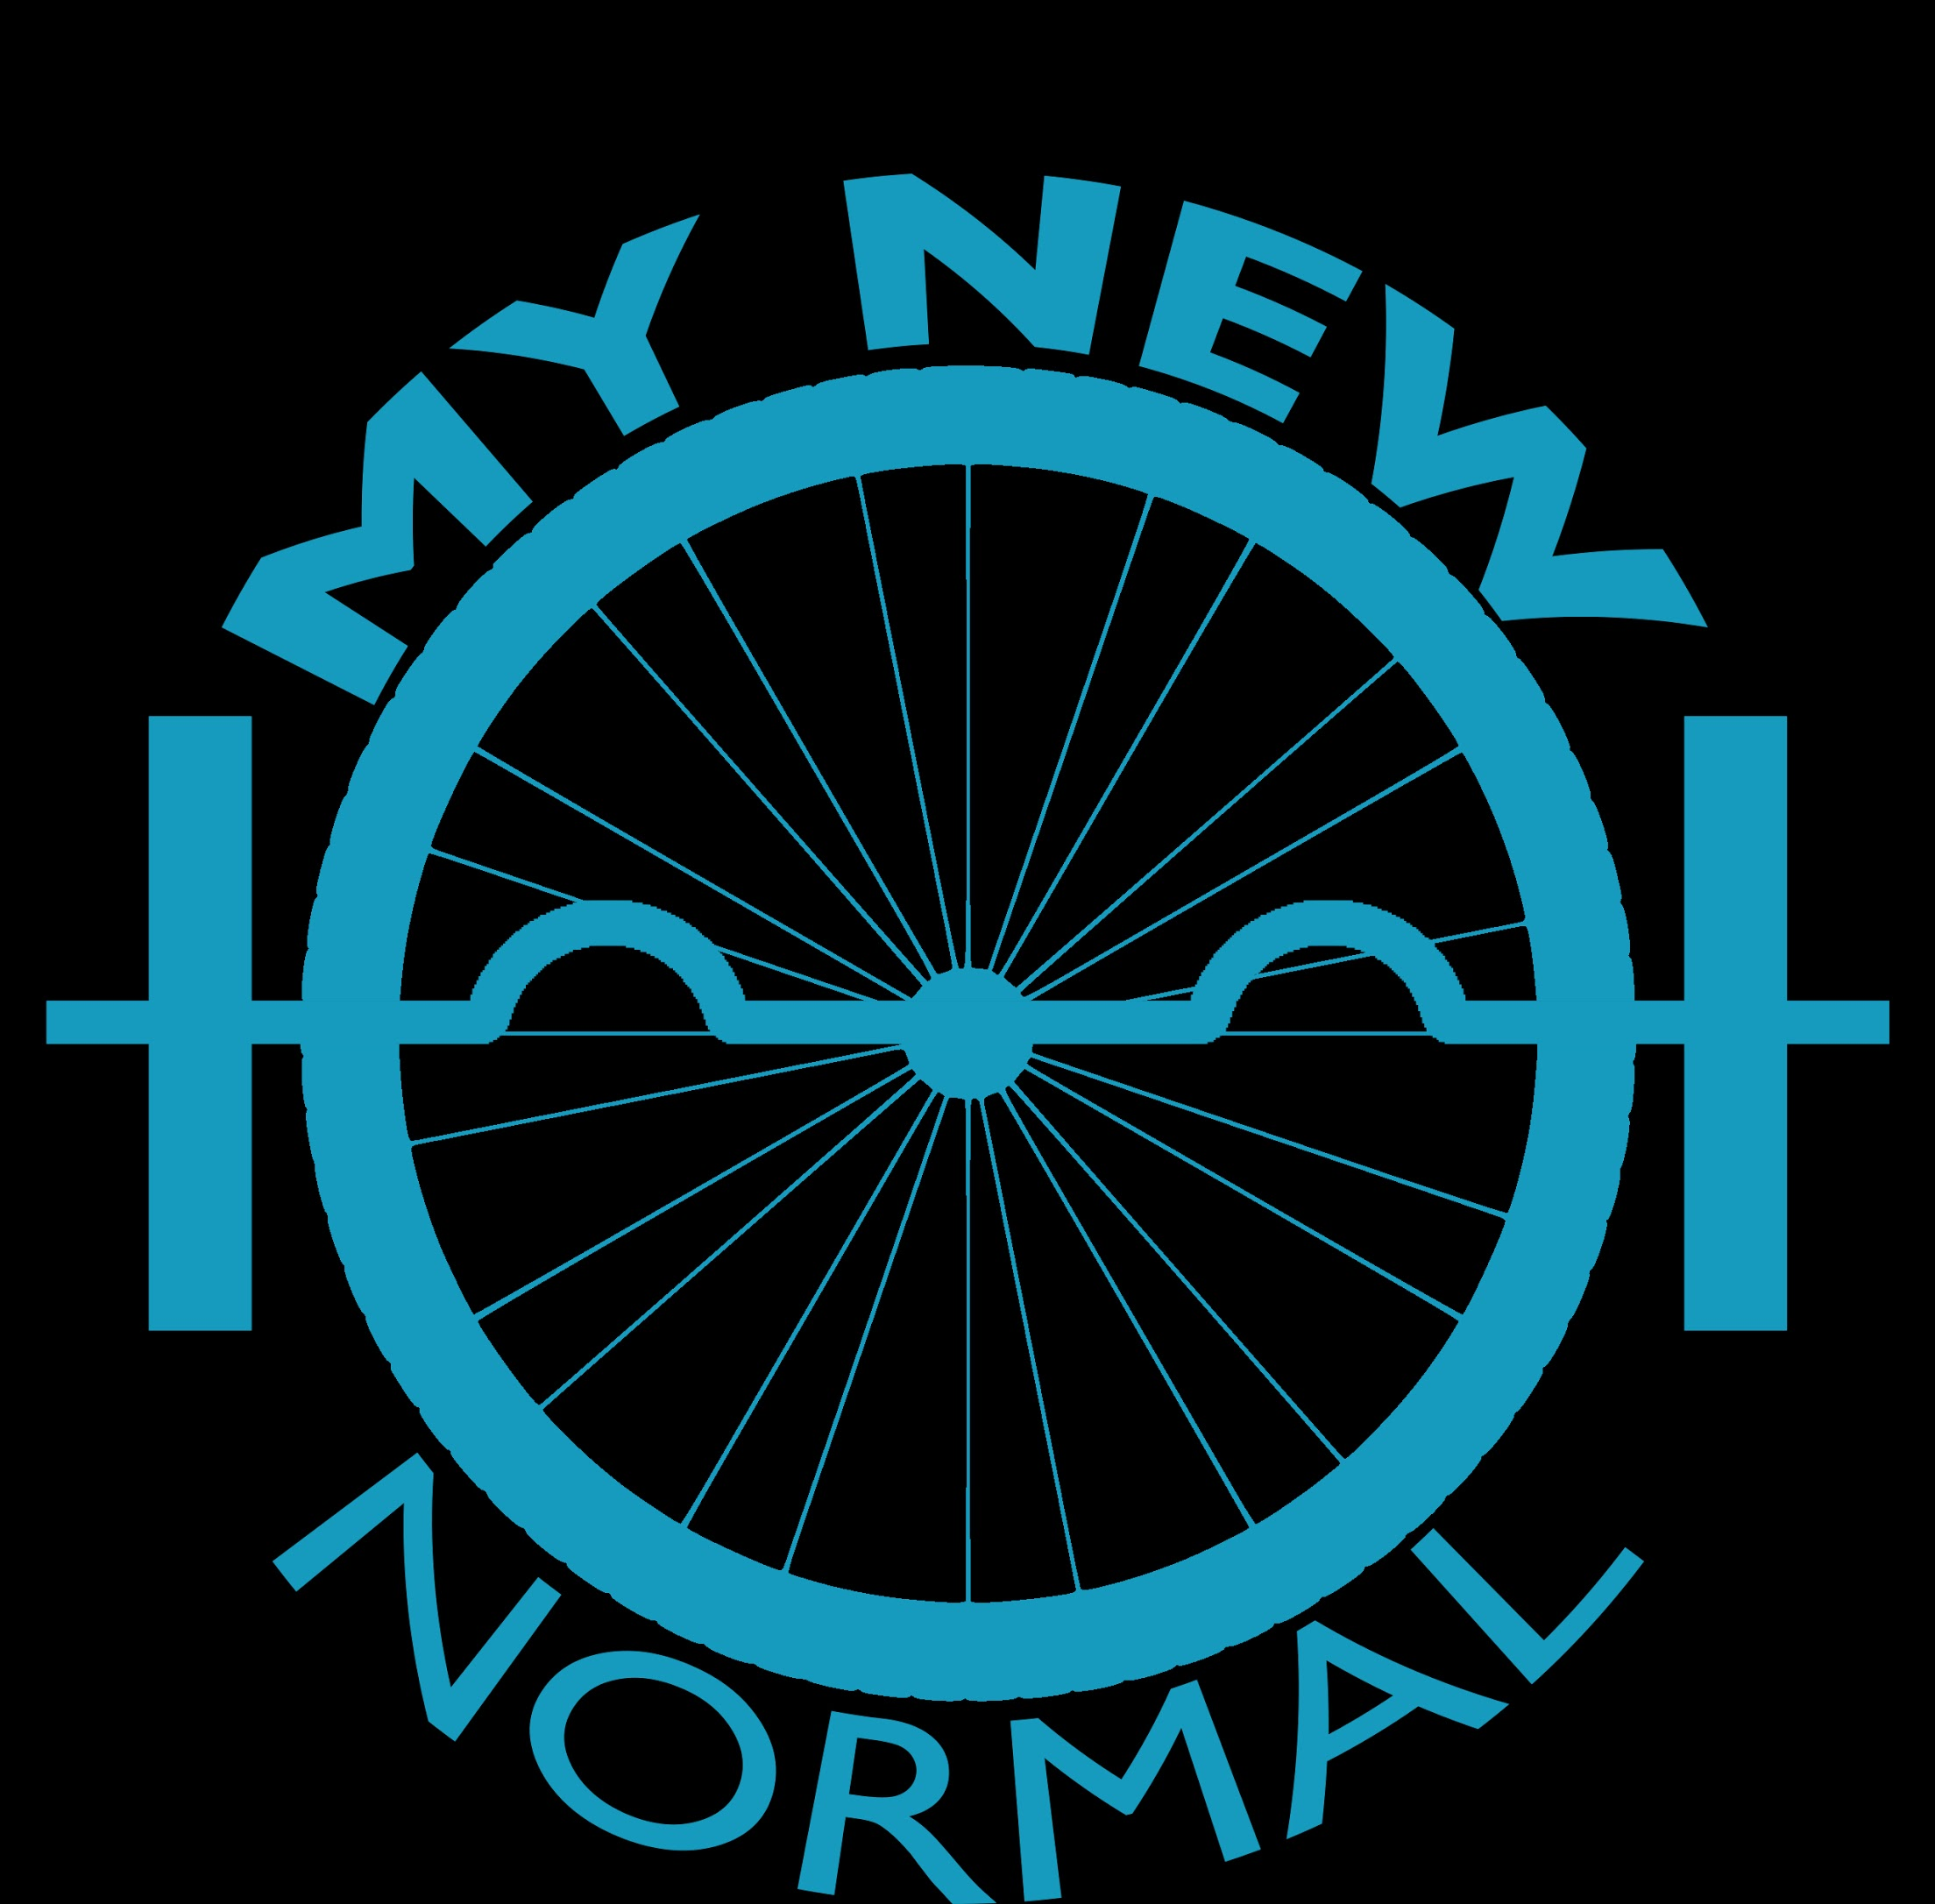 My New Normal A Podcast About Adapting By Dr Theresa Larson